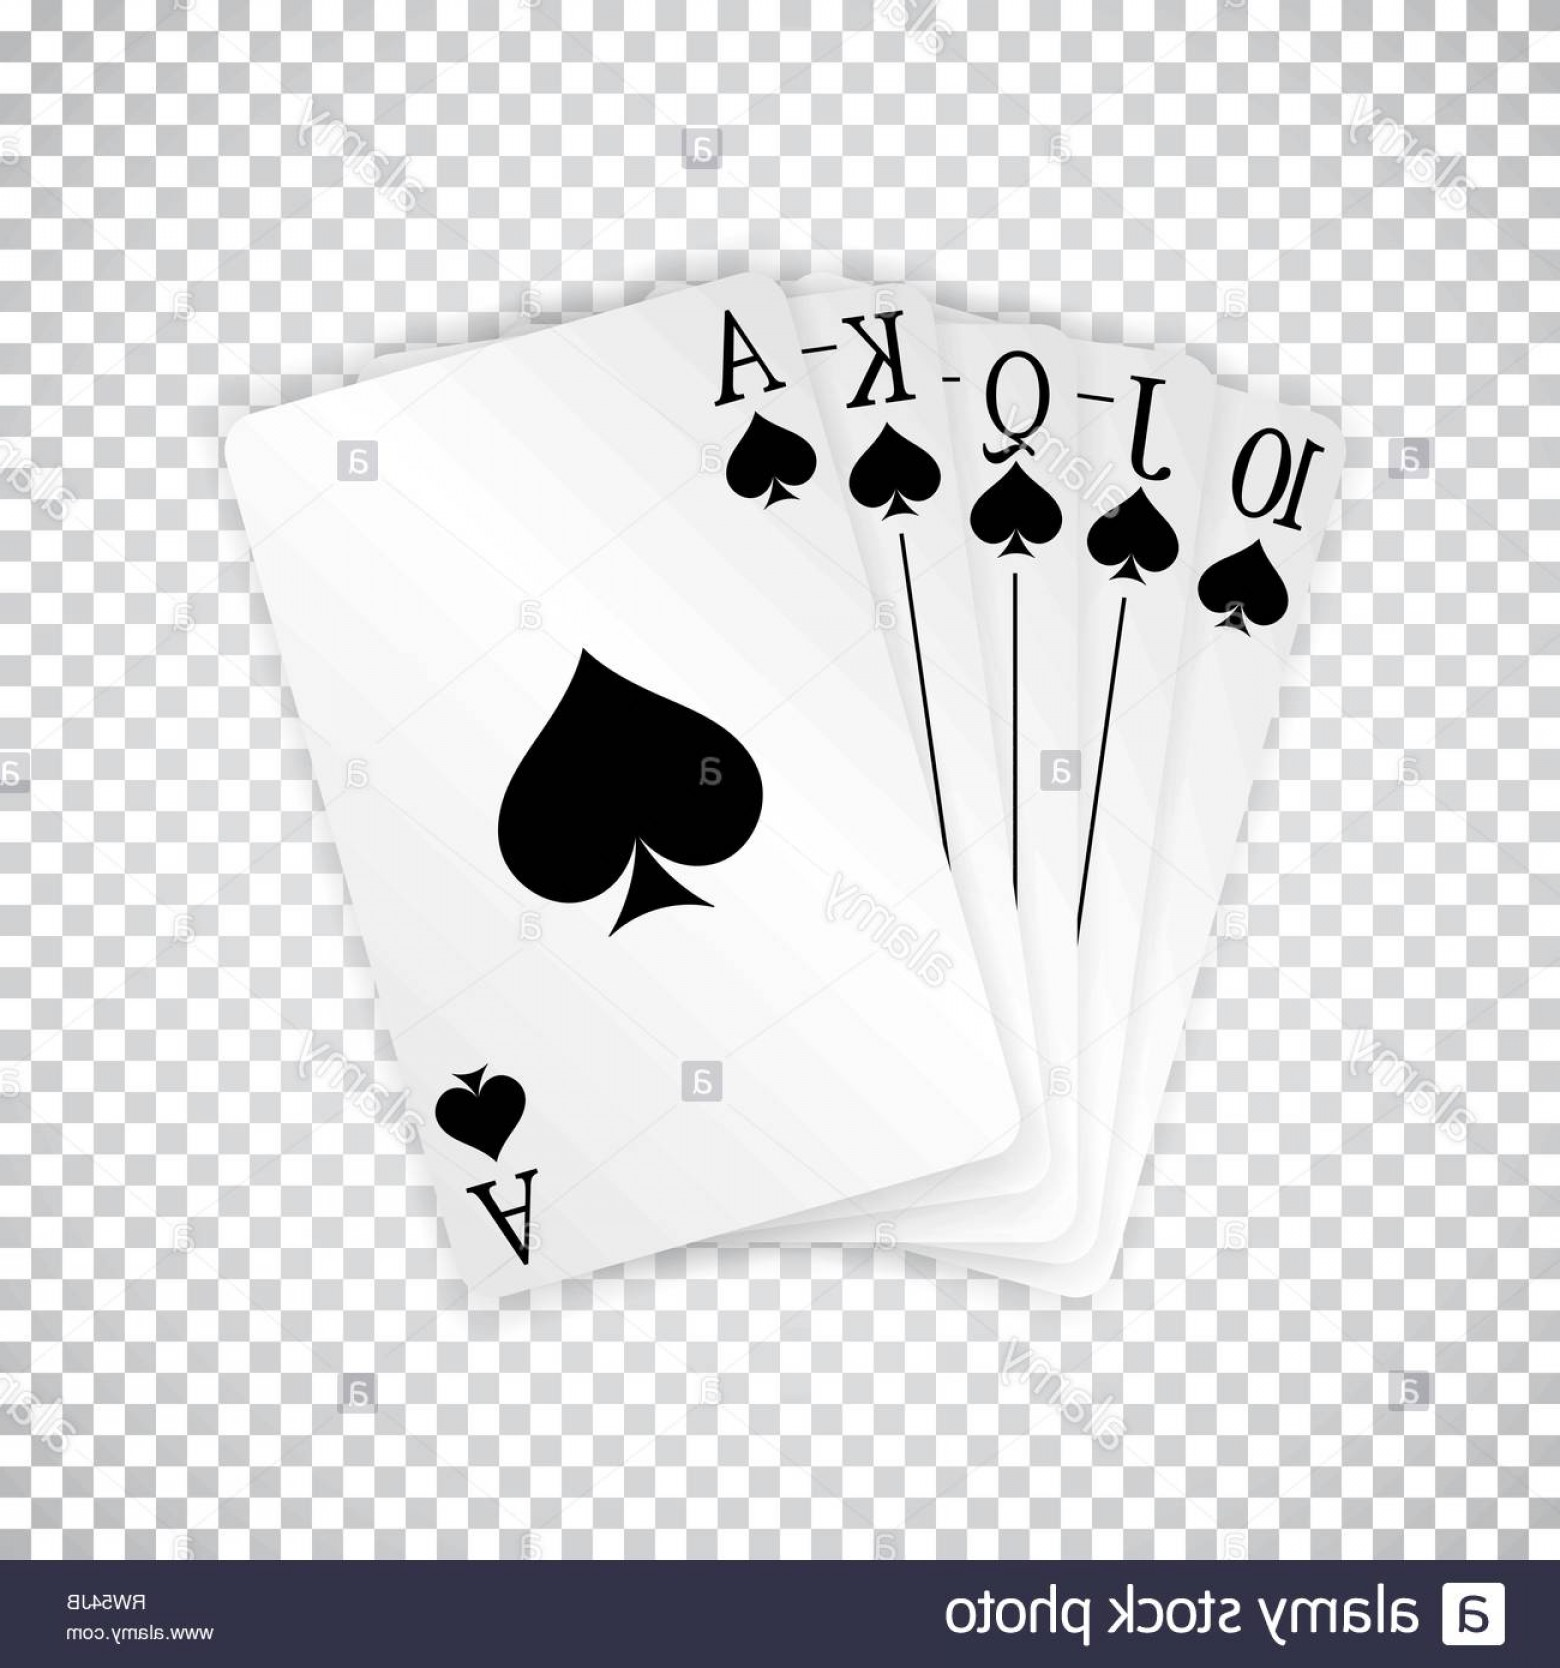 Poker Hand Vector: A Royal Straight Flush Playing Cards Poker Hand In Spades Image